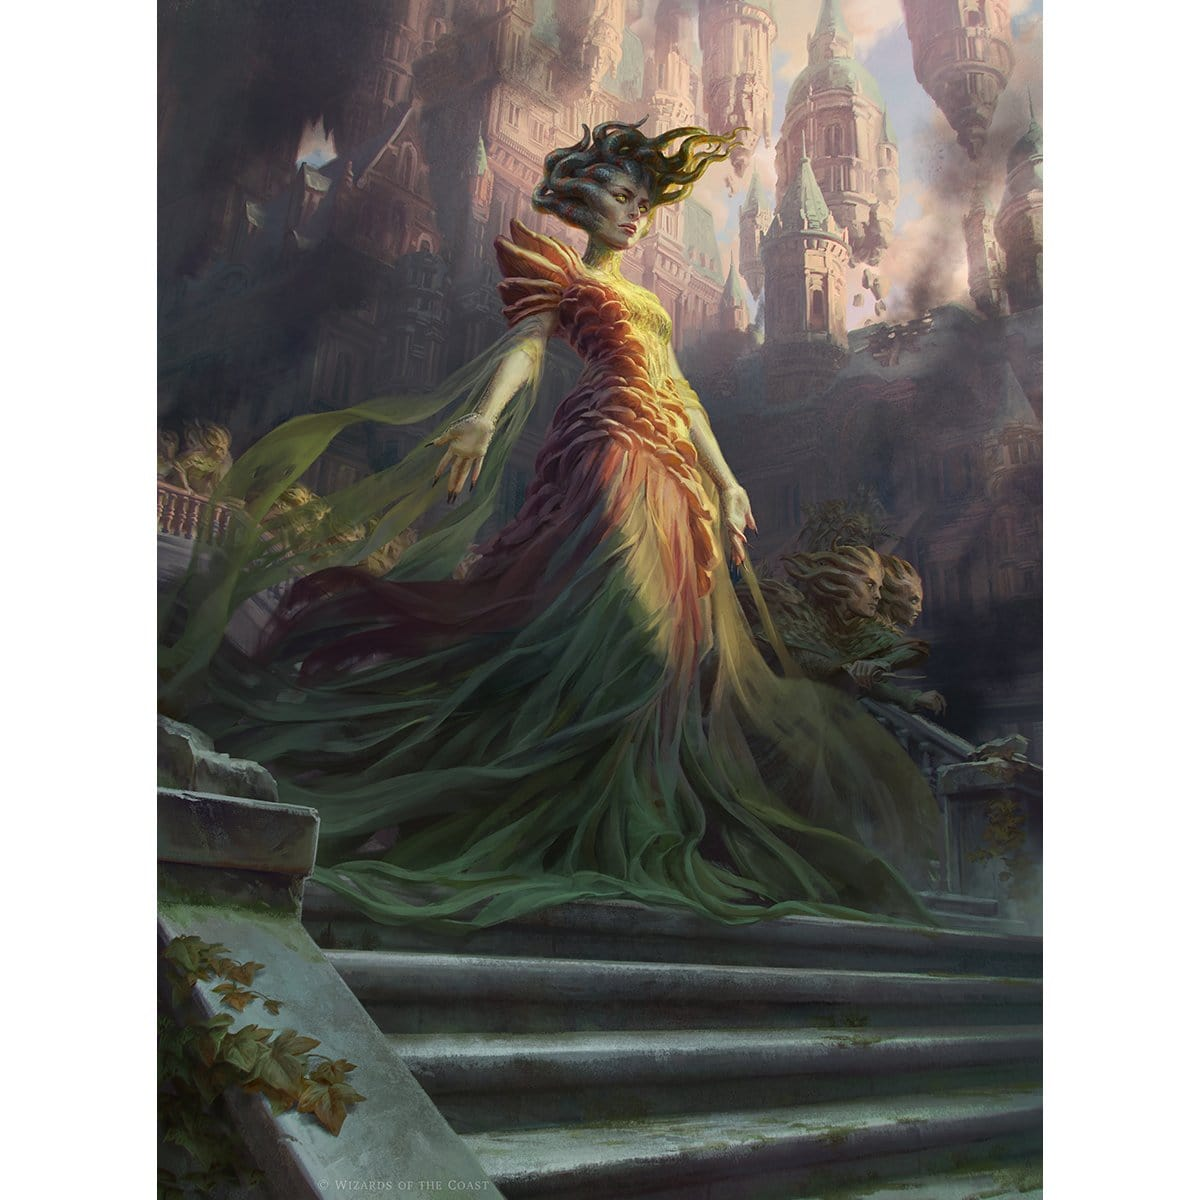 Vraska, Swarm's Embrace Print - Print - Original Magic Art - Accessories for Magic the Gathering and other card games